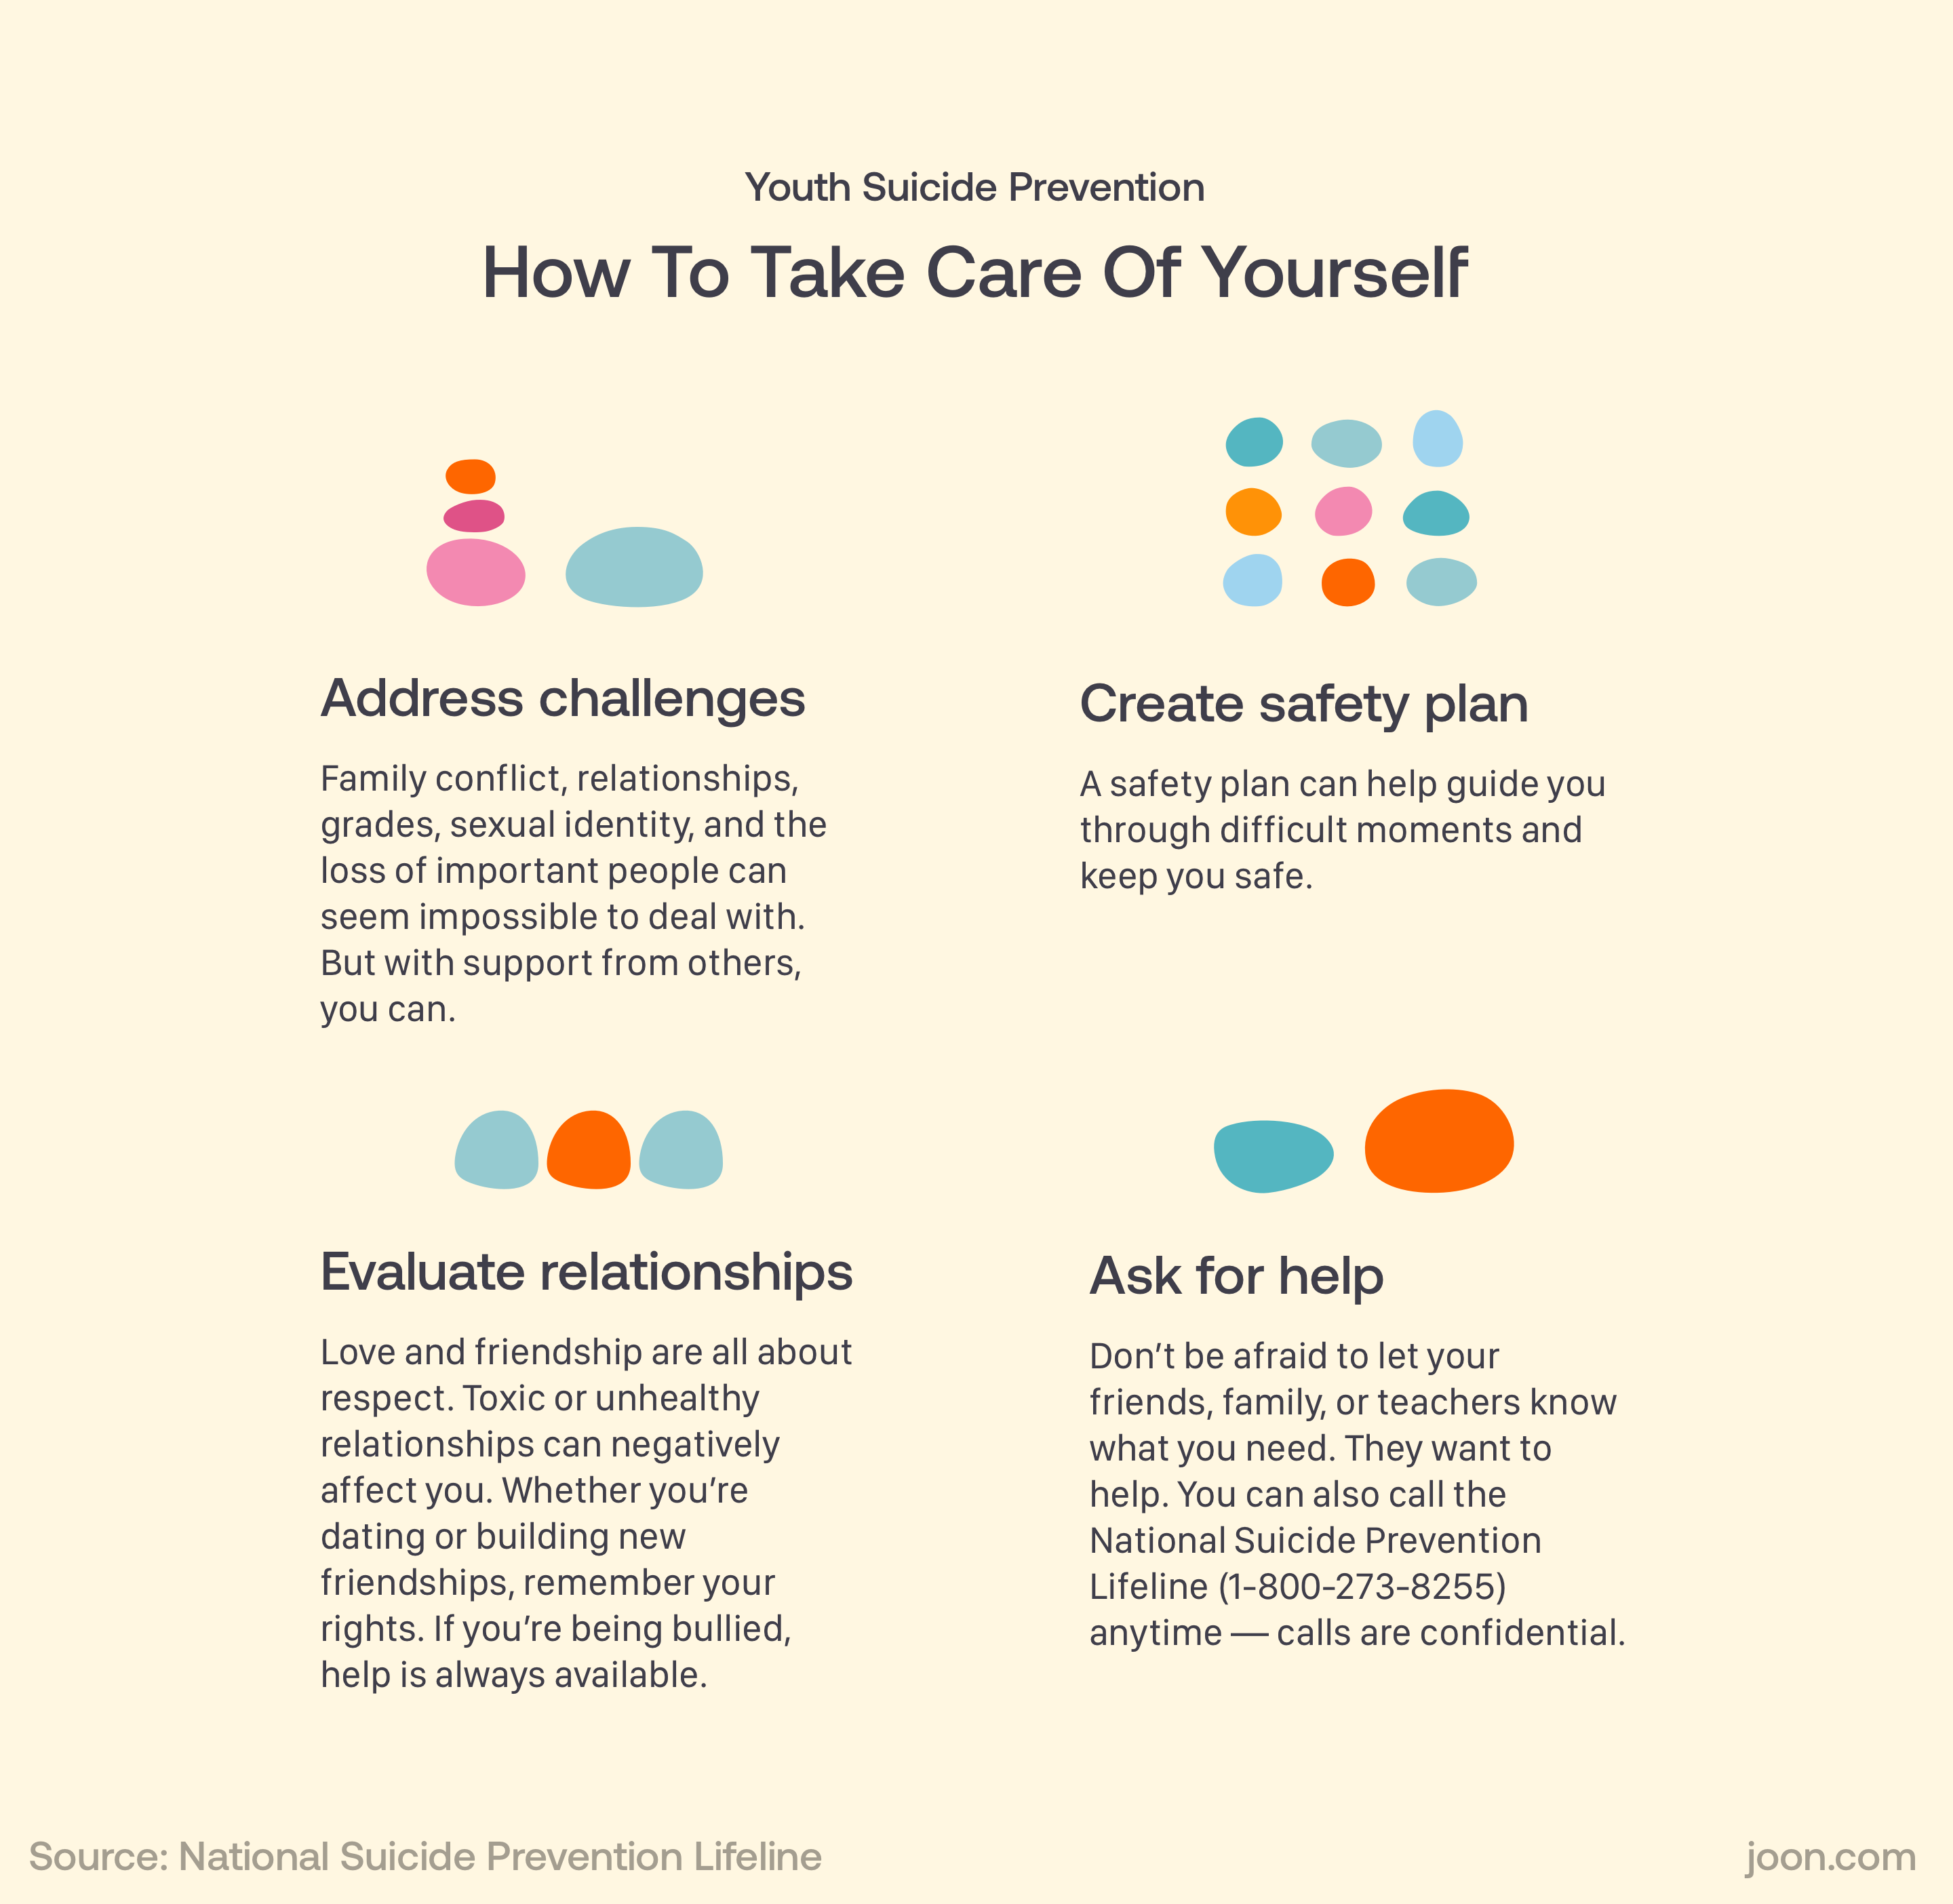 Youth Suicide Prevention. How teens can take care of their own mental health.